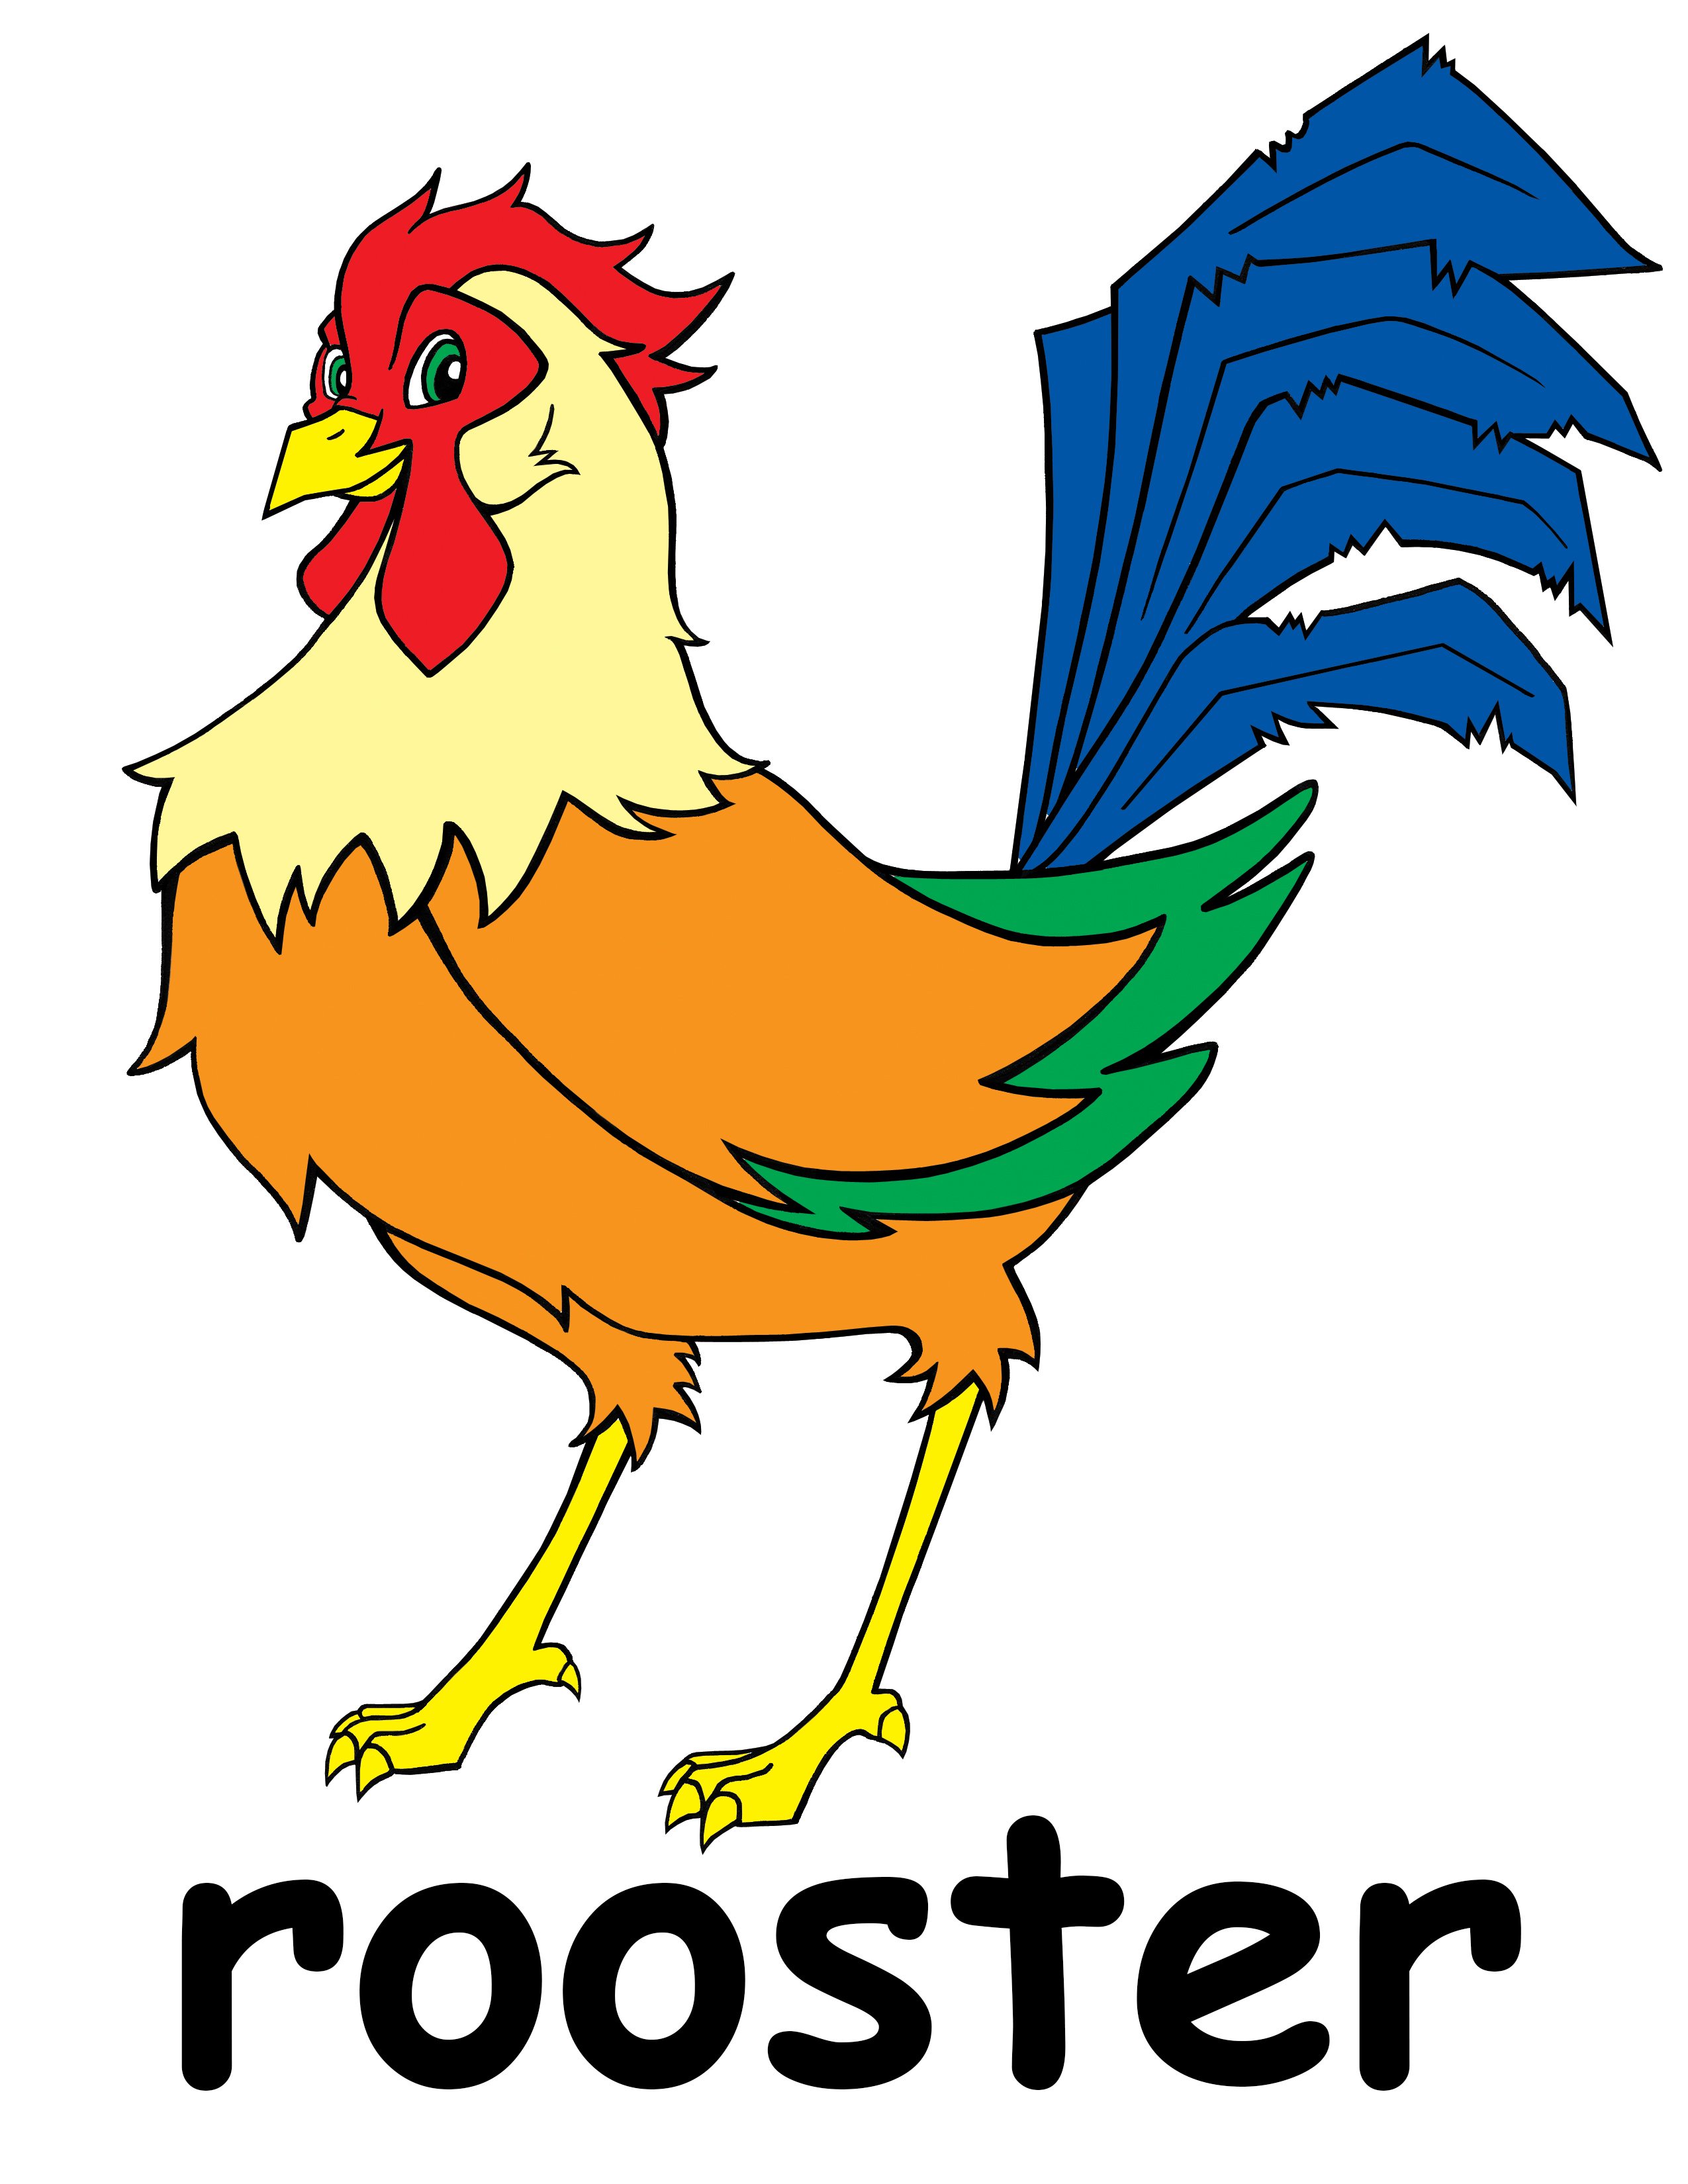 Animal clipart rooster Free Art Clip Rooster Clipart